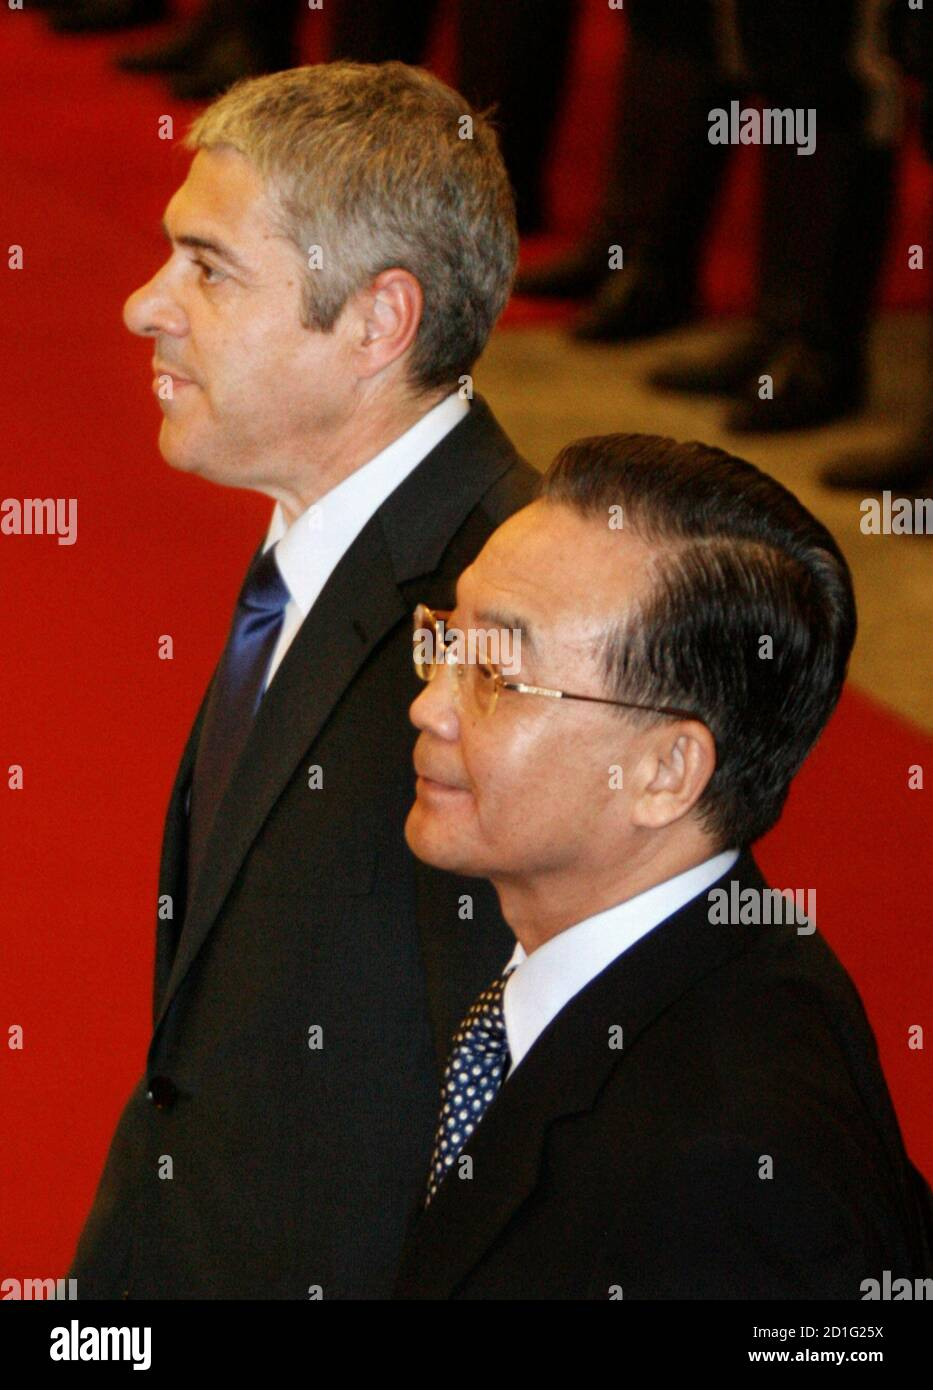 Chinese Prime Minister Wen Jiabao and visiting Portuguese counterpart Jose Socrates (L) review the honour guard during a welcoming ceremony at the Great Hall of the People in Beijing, January 31, 2007.  REUTERS/Claro Cortes IV   (CHINA) Foto de stock